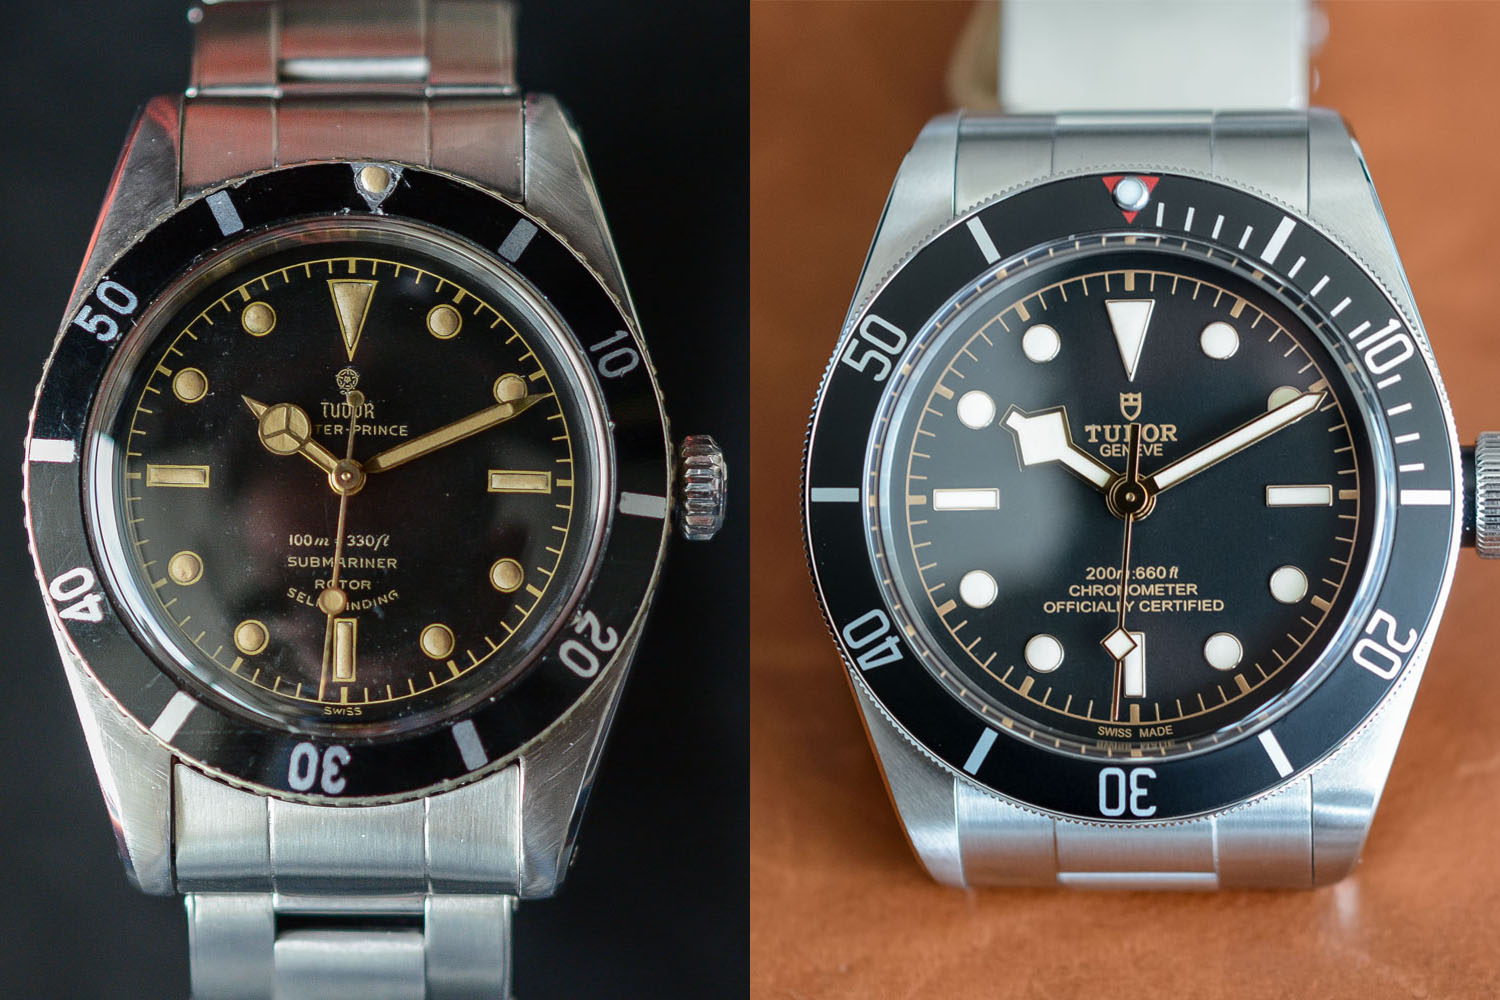 Tudor And Its Heritage How The Vintage Submariners Inspired The